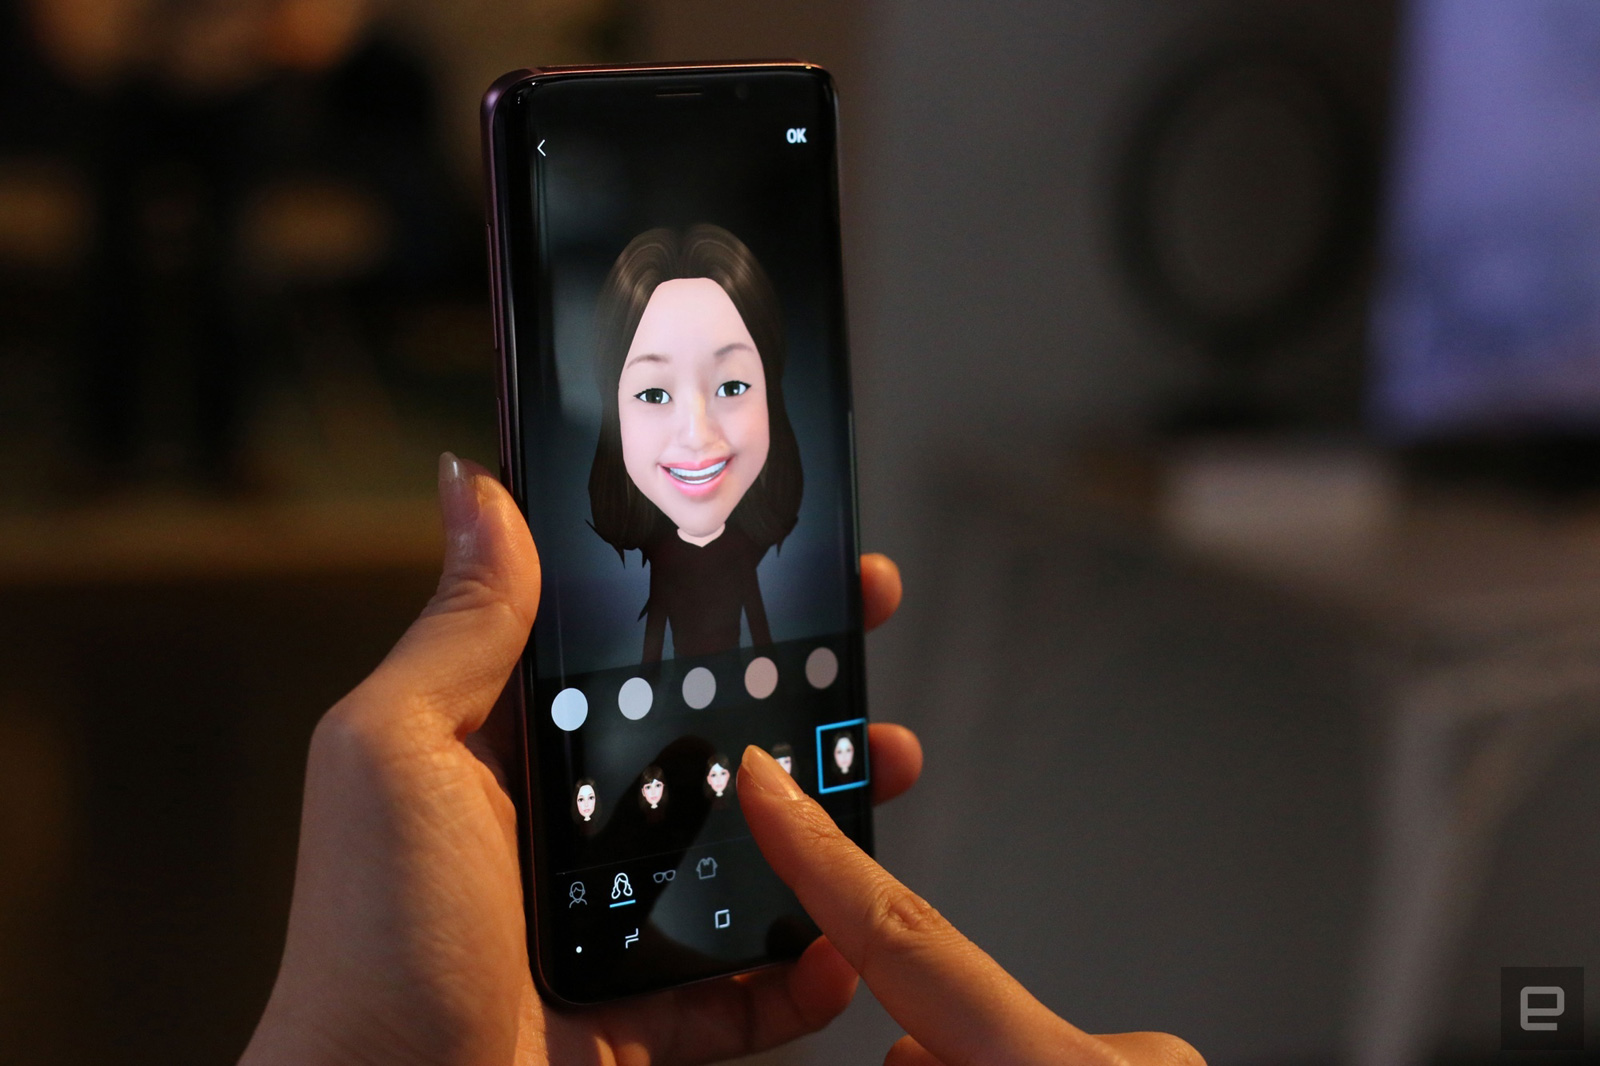 Samsung's AR Emoji may be useful for considerably more than the occasional  funny reaction GIF. The tech giant recently received a US patent for a